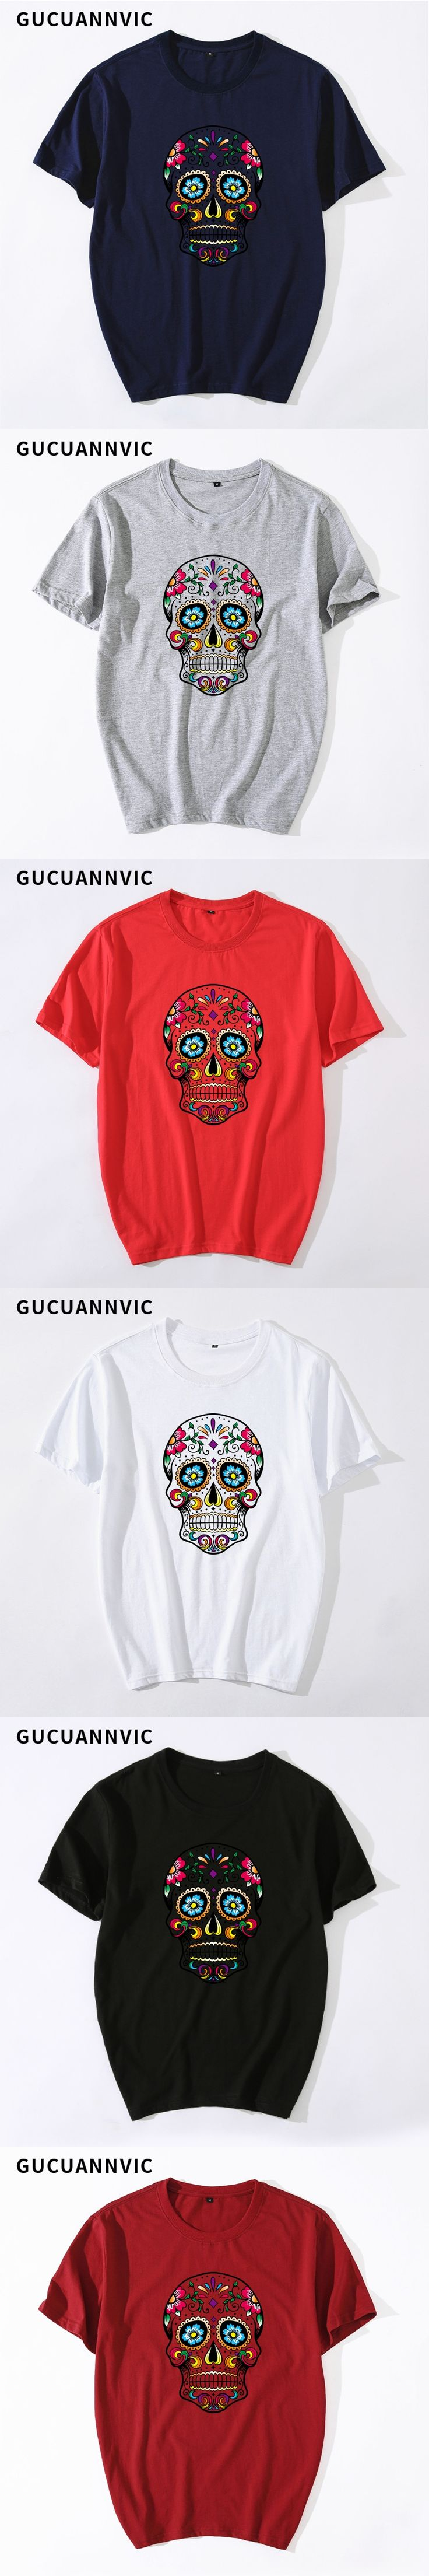 Style shirt men short-sleeved loose scary pattern top shirt casual suitable popular tee shirt brand printing round neck T-shirt